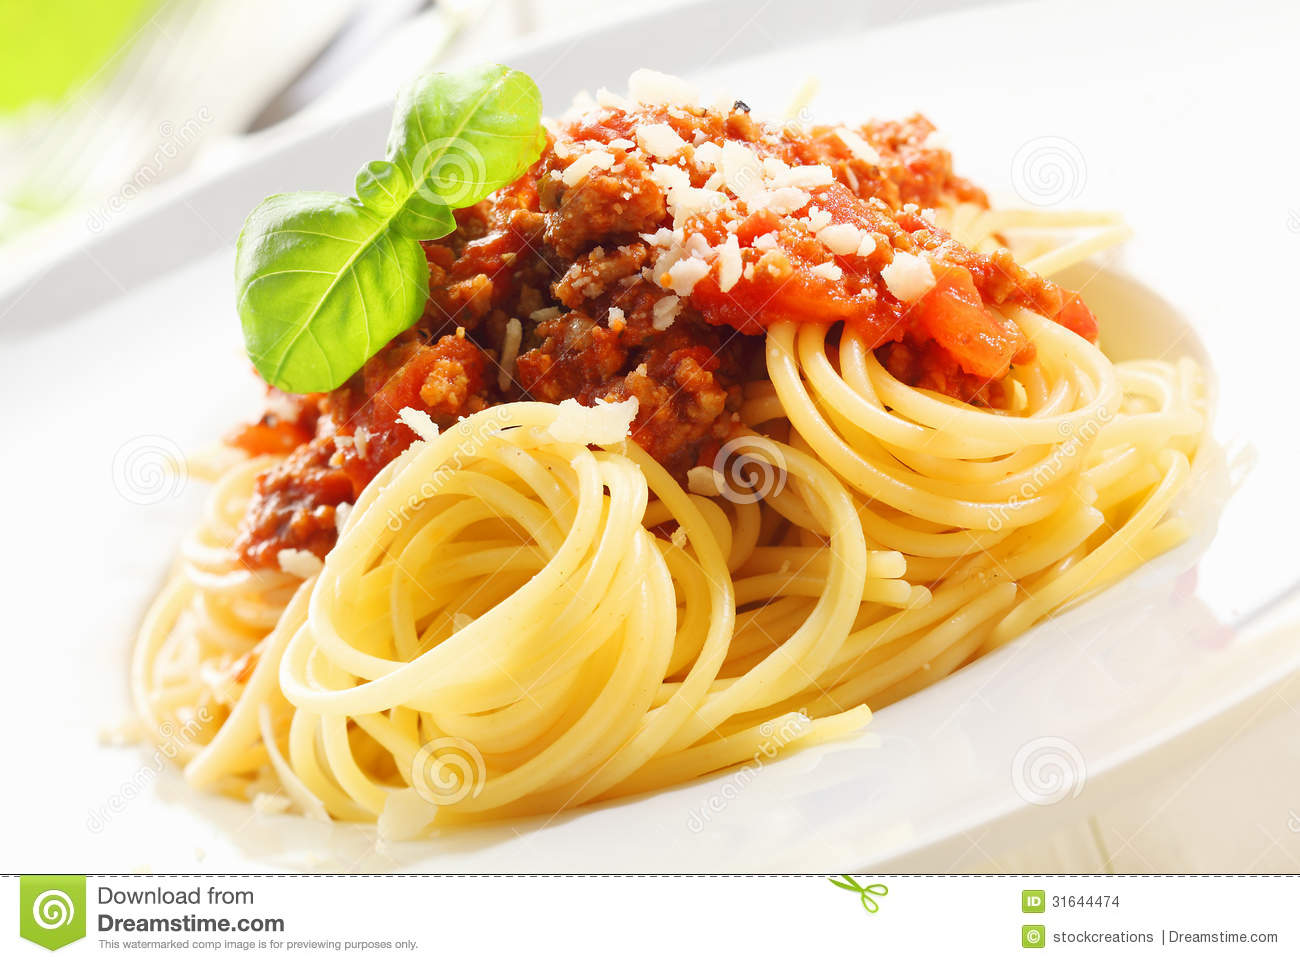 Spaghetti With Bolognese Sauce Stock Images - Image: 31644474